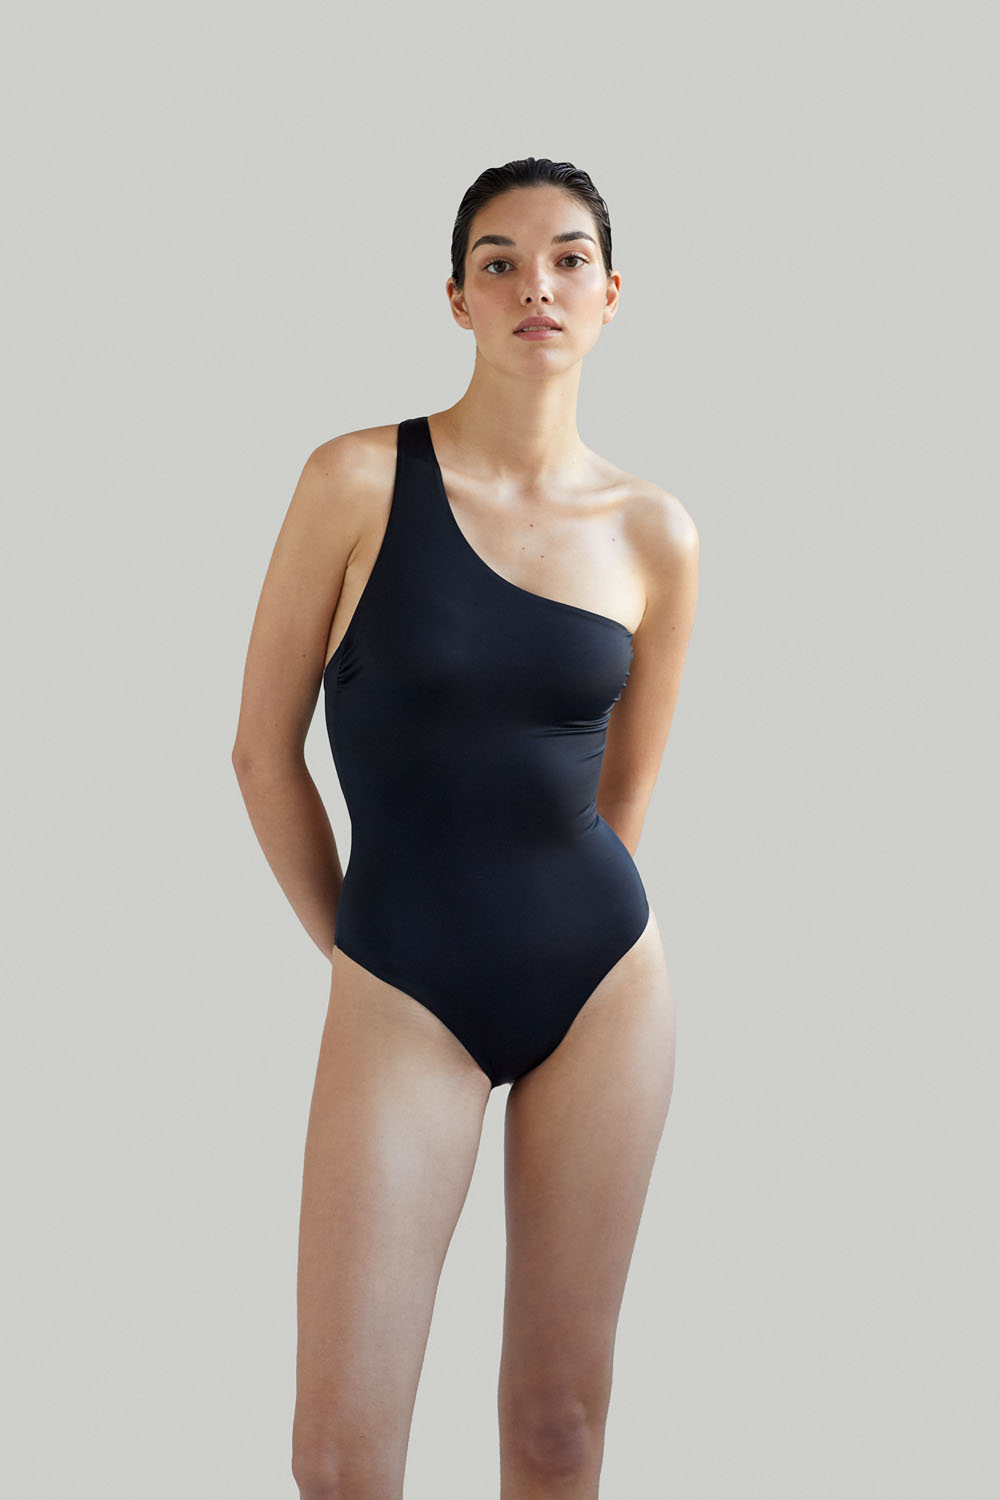 Sustainable Luxury Swimwear / Ropa de baño sostenible, onepiece swimsuit/ bañador ecológico. Sendai onepiece black by NOW_THEN